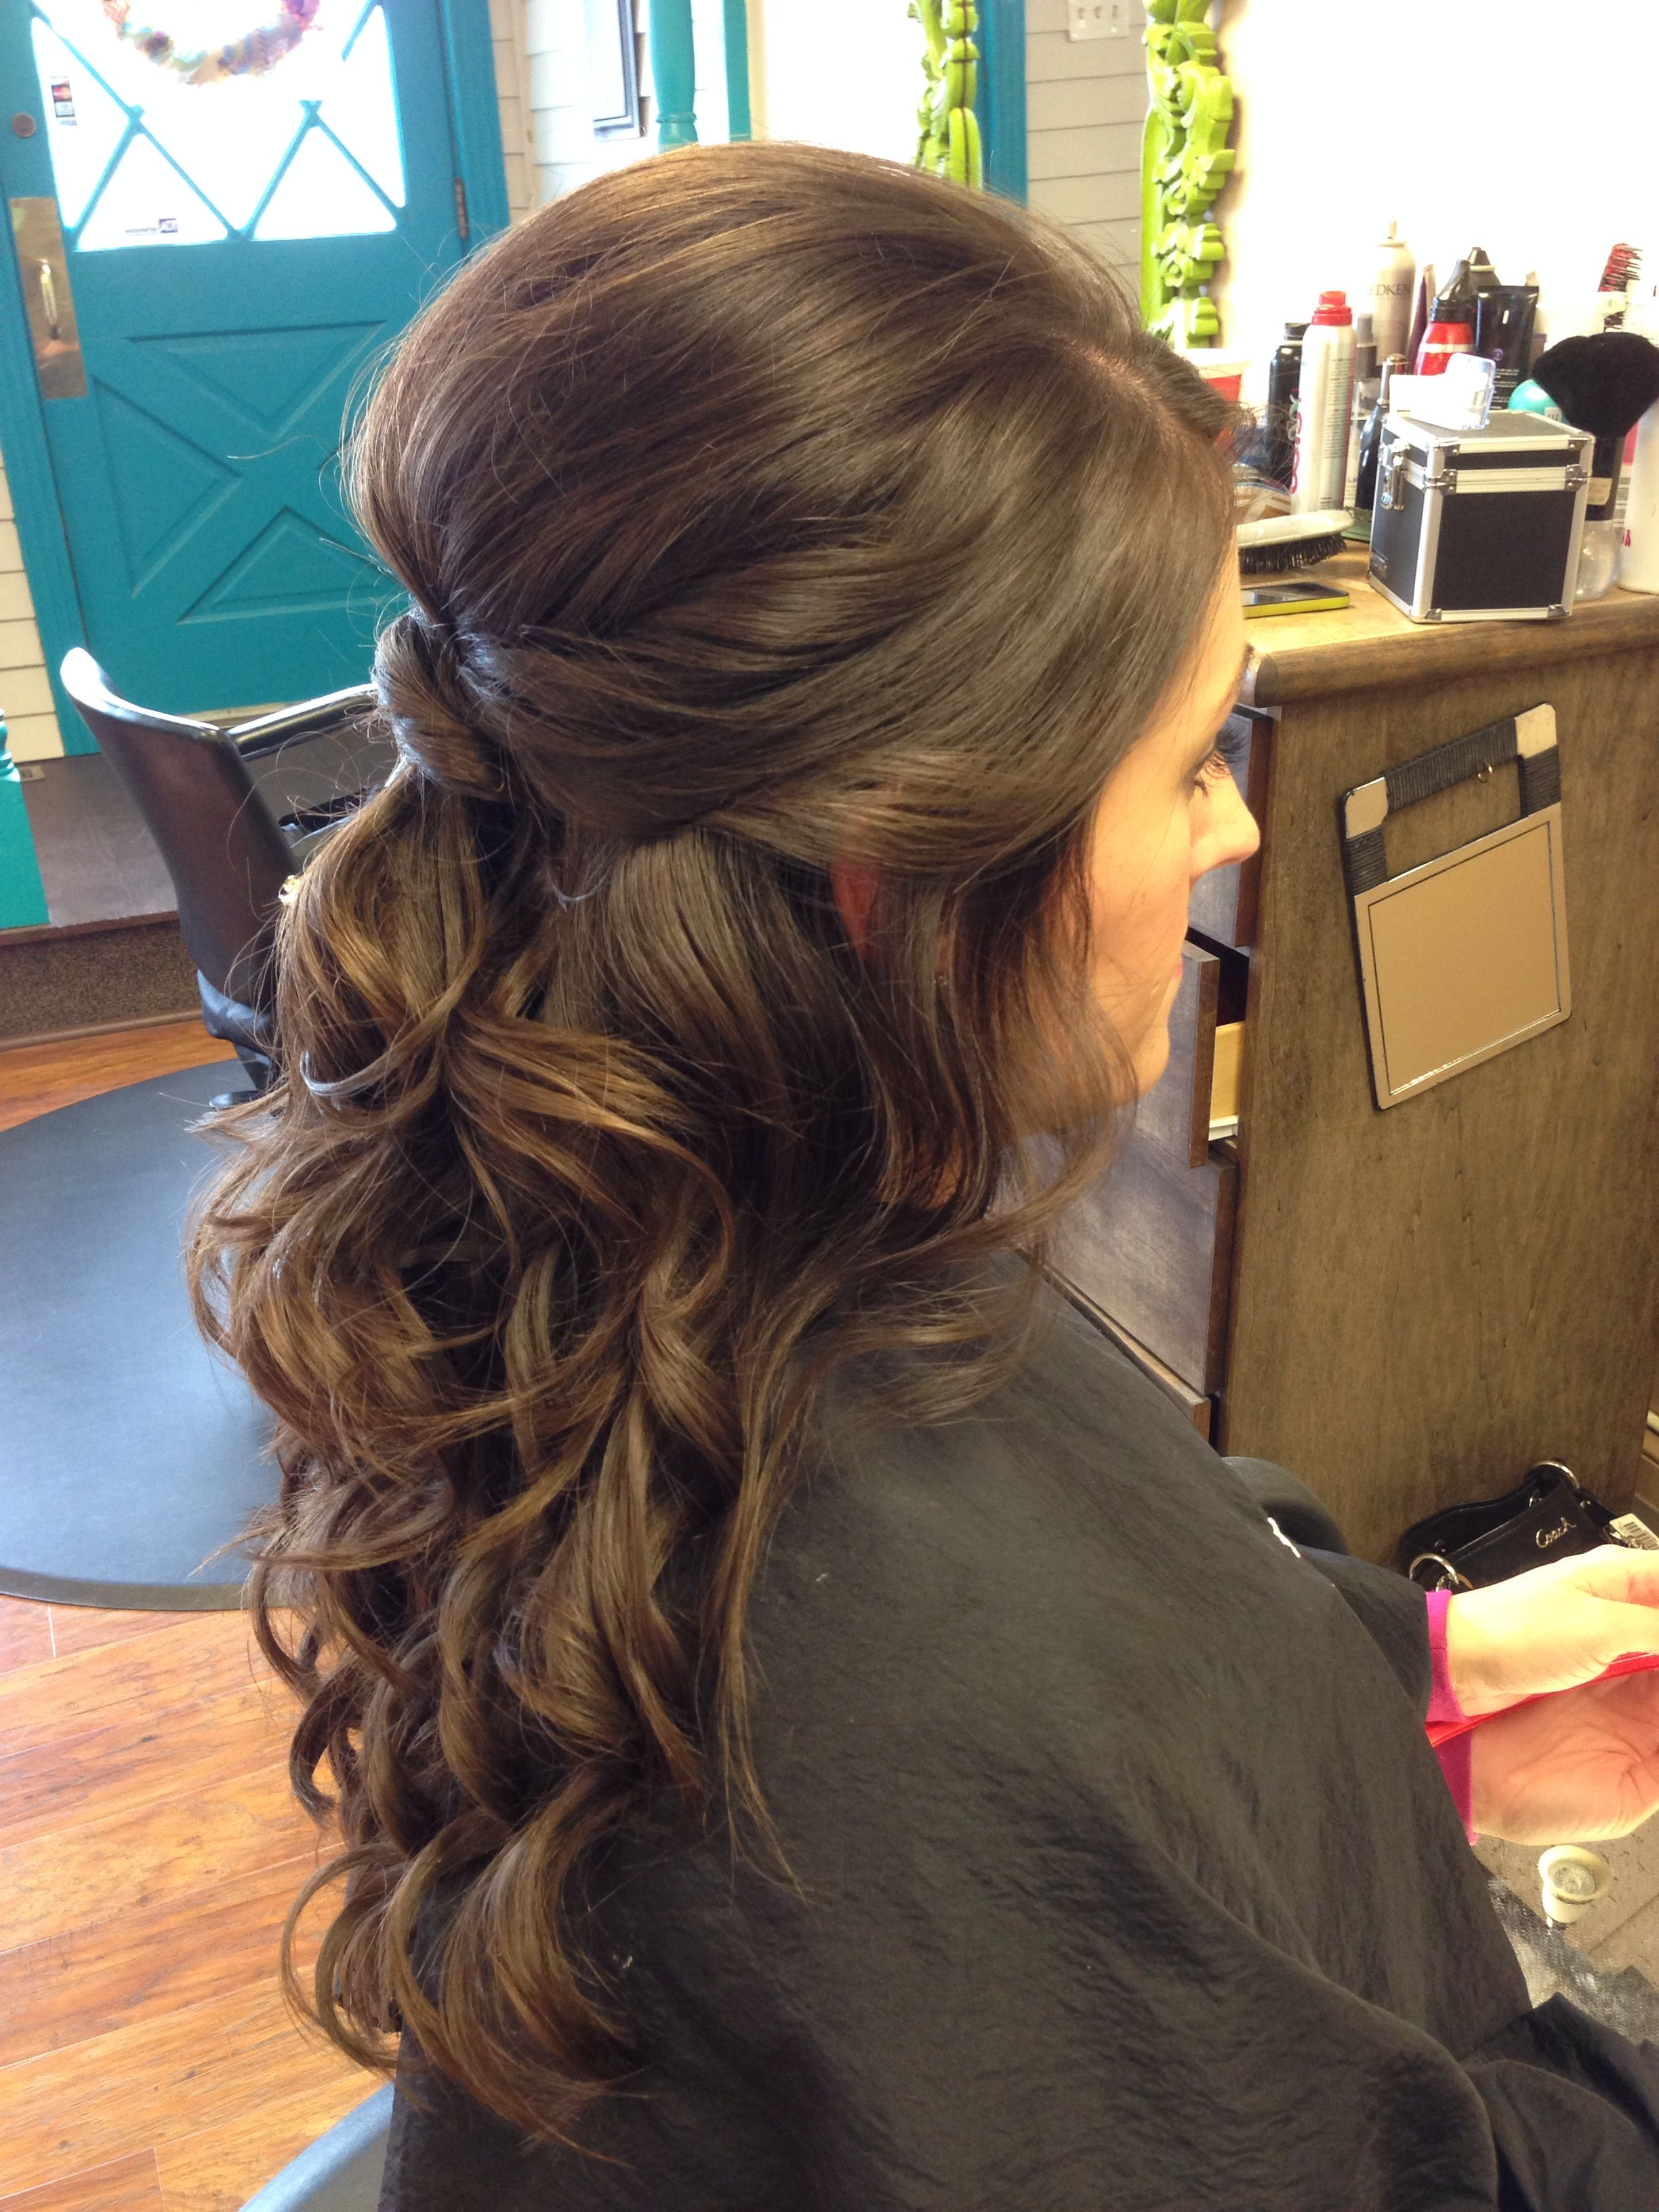 Wedding Hairstyles For Long Hair Wedding Hair Styles  For More Amazing Tips Tools And Local Wedding